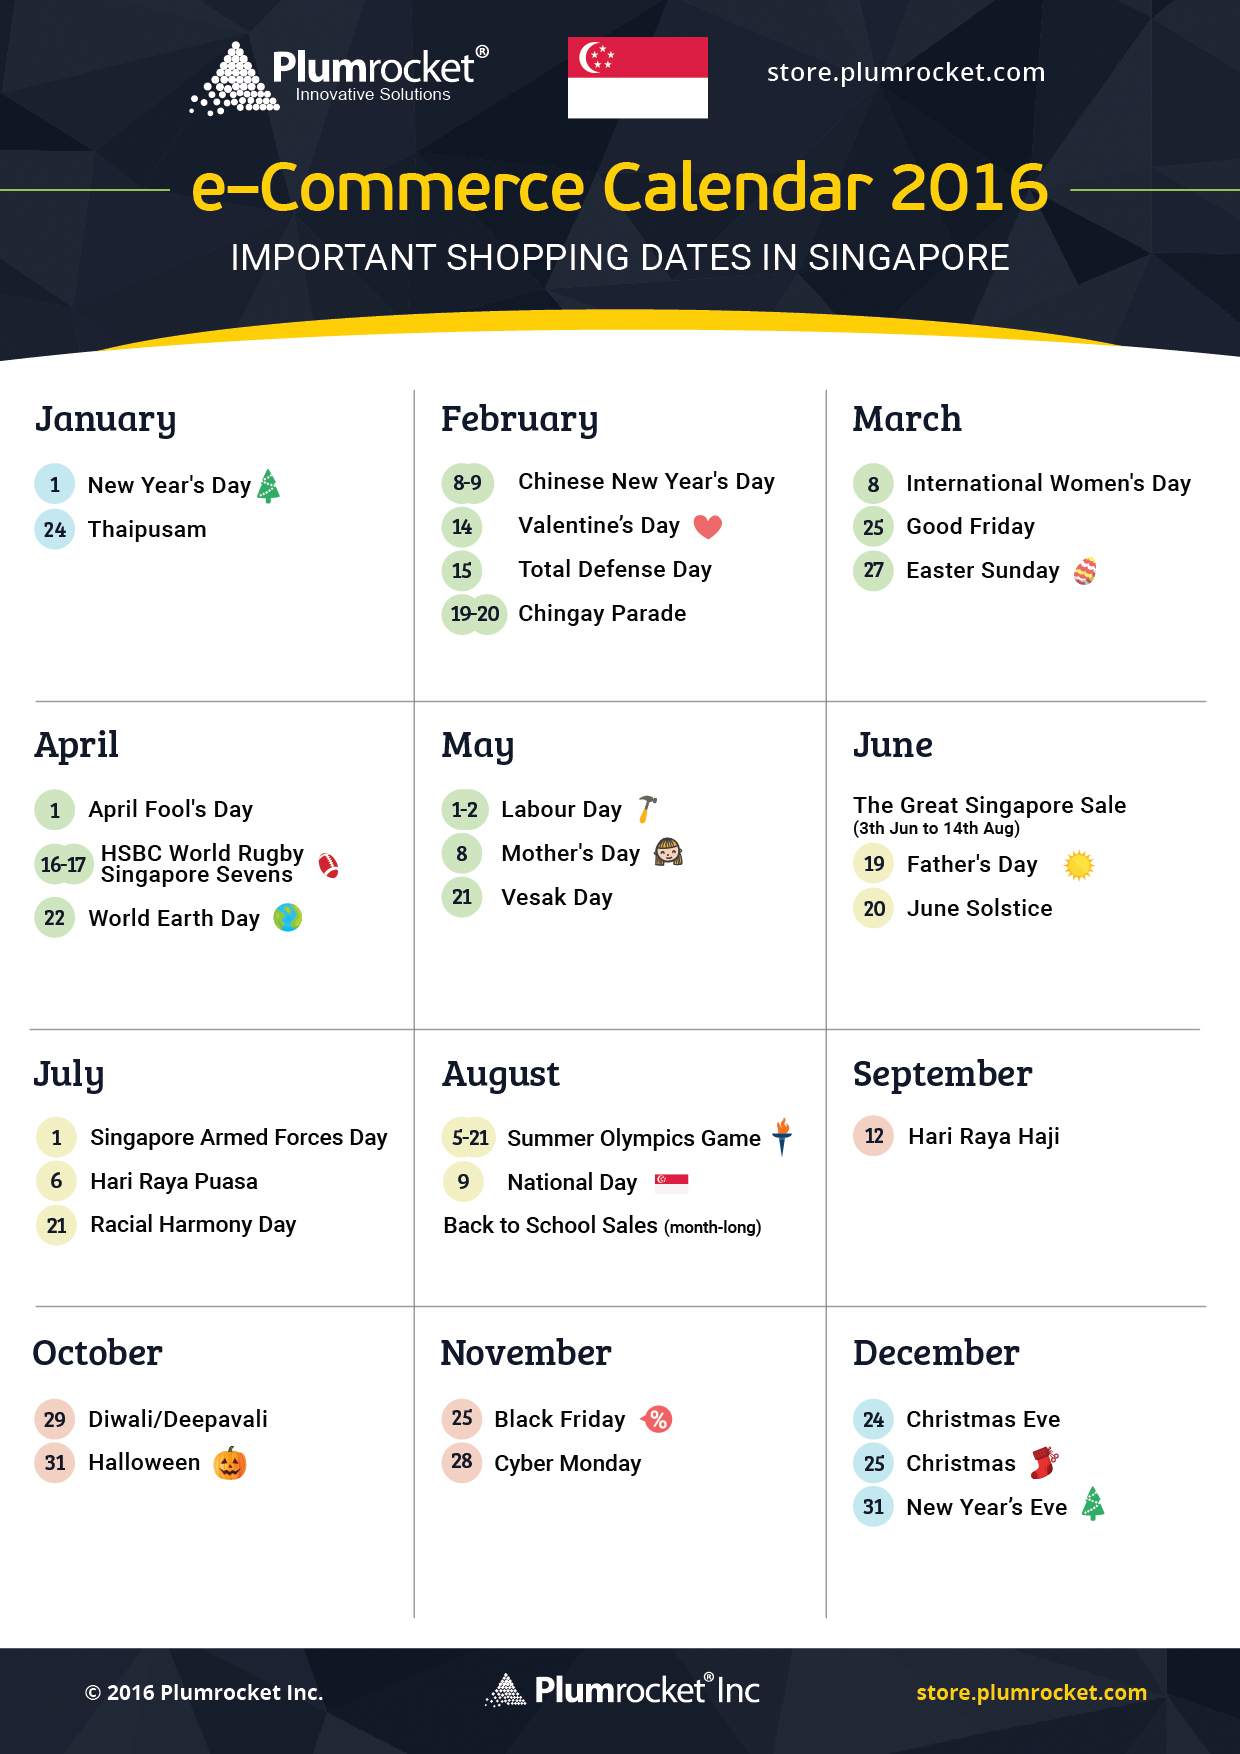 ecommerce-calendar-singapore-2016-by-Plumrocket